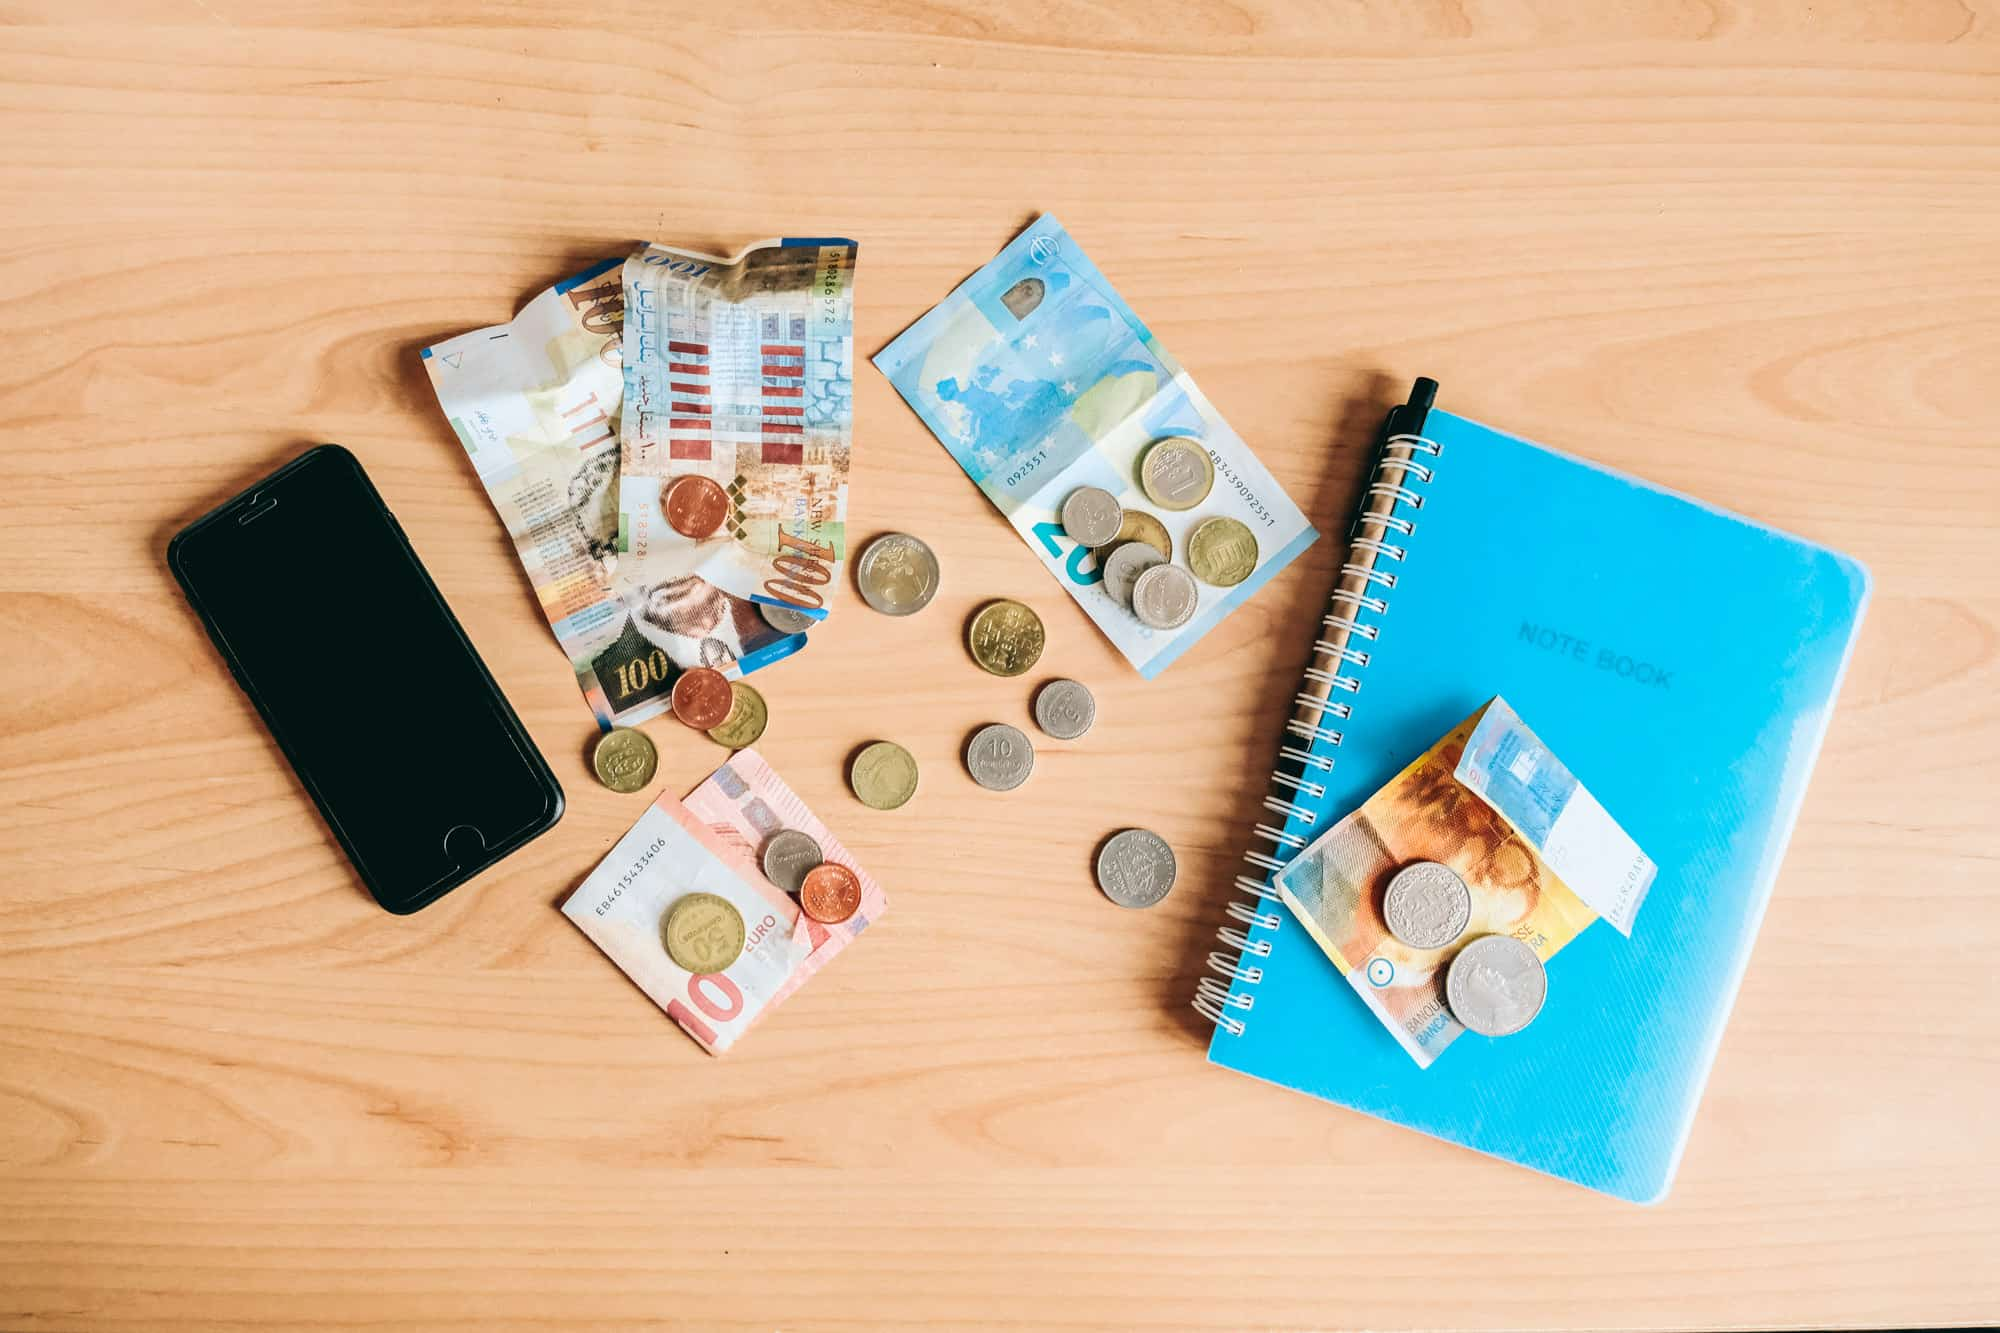 The Best Budgeting and Expense-Tracking Apps For Travelers